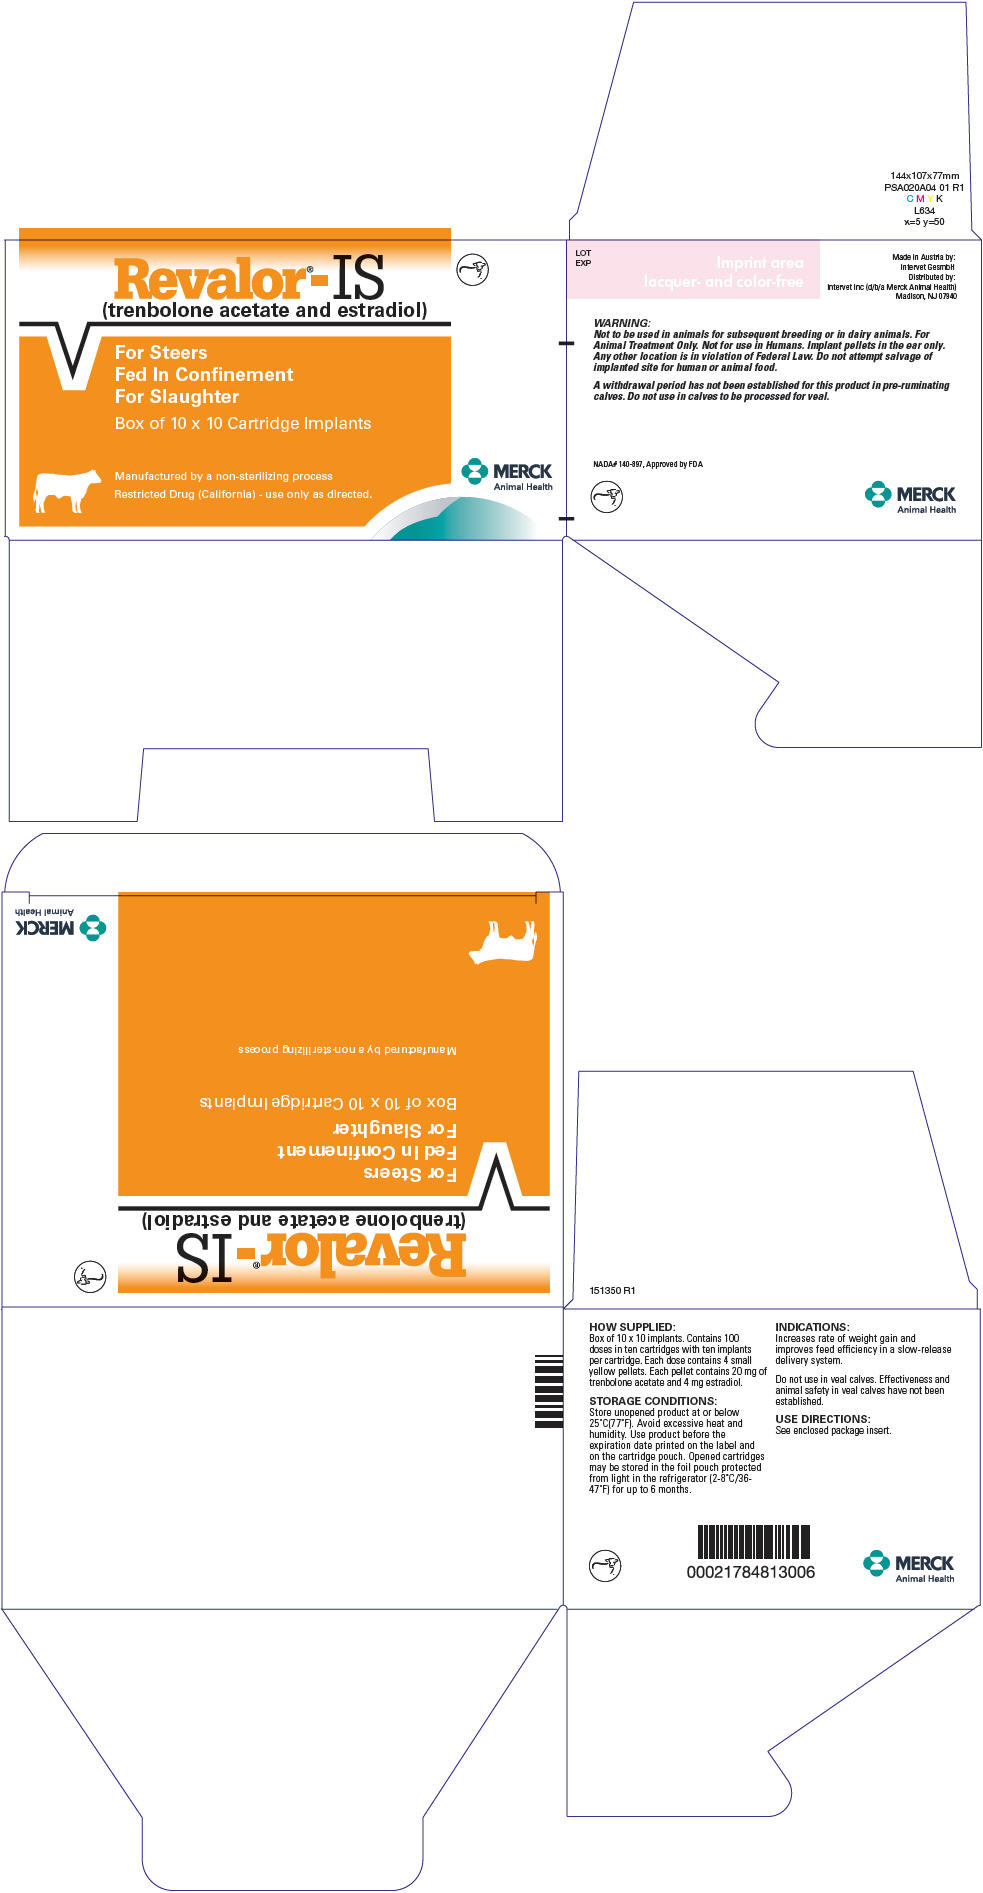 Revalor-is (Trenbolone Acetate And Estradiol) Implant [Merck Sharp & Dohme Corp.]